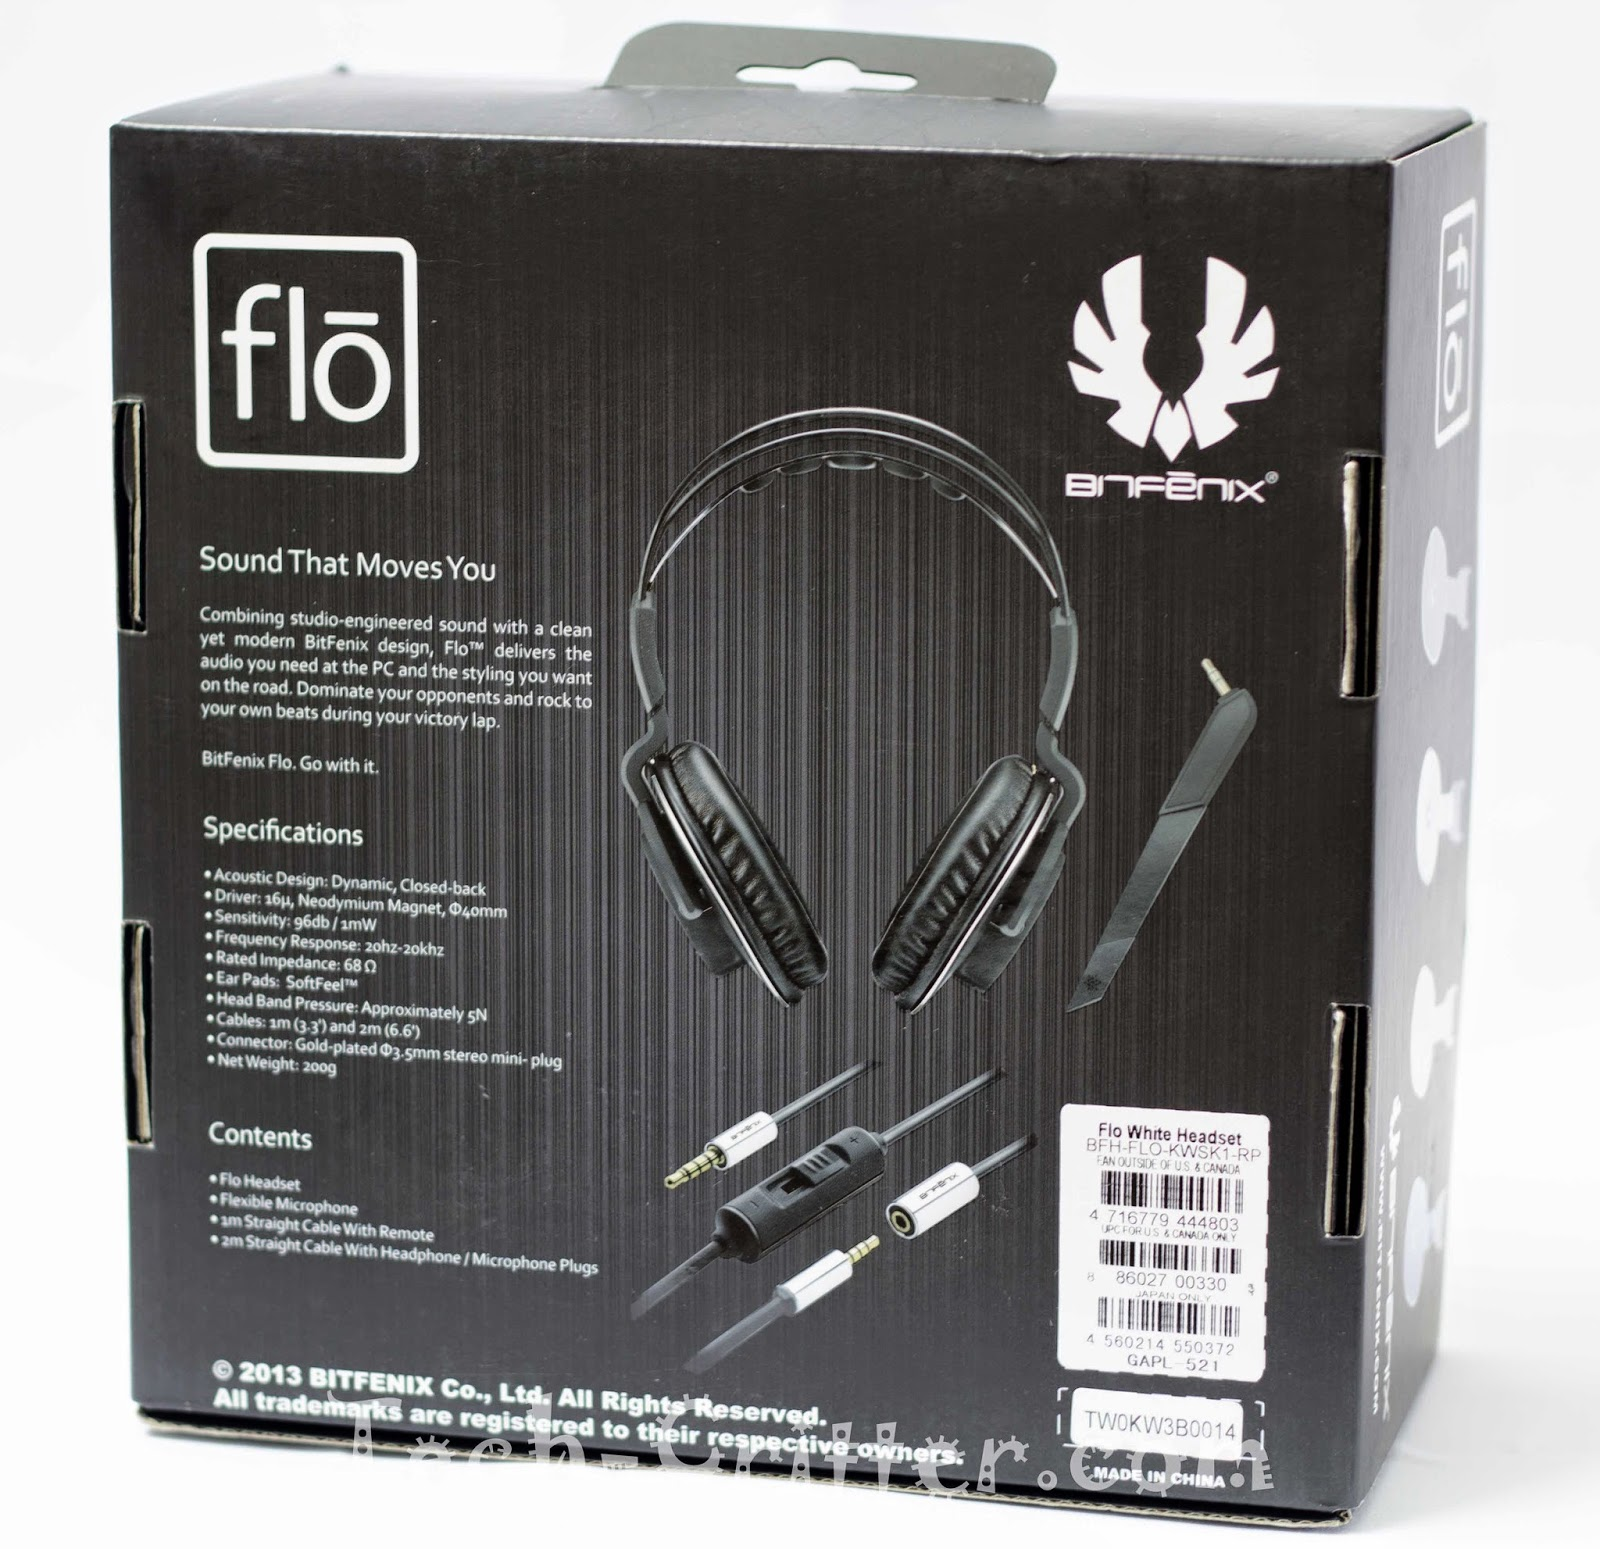 BitFenix Flo Headset Unboxing & Review 38